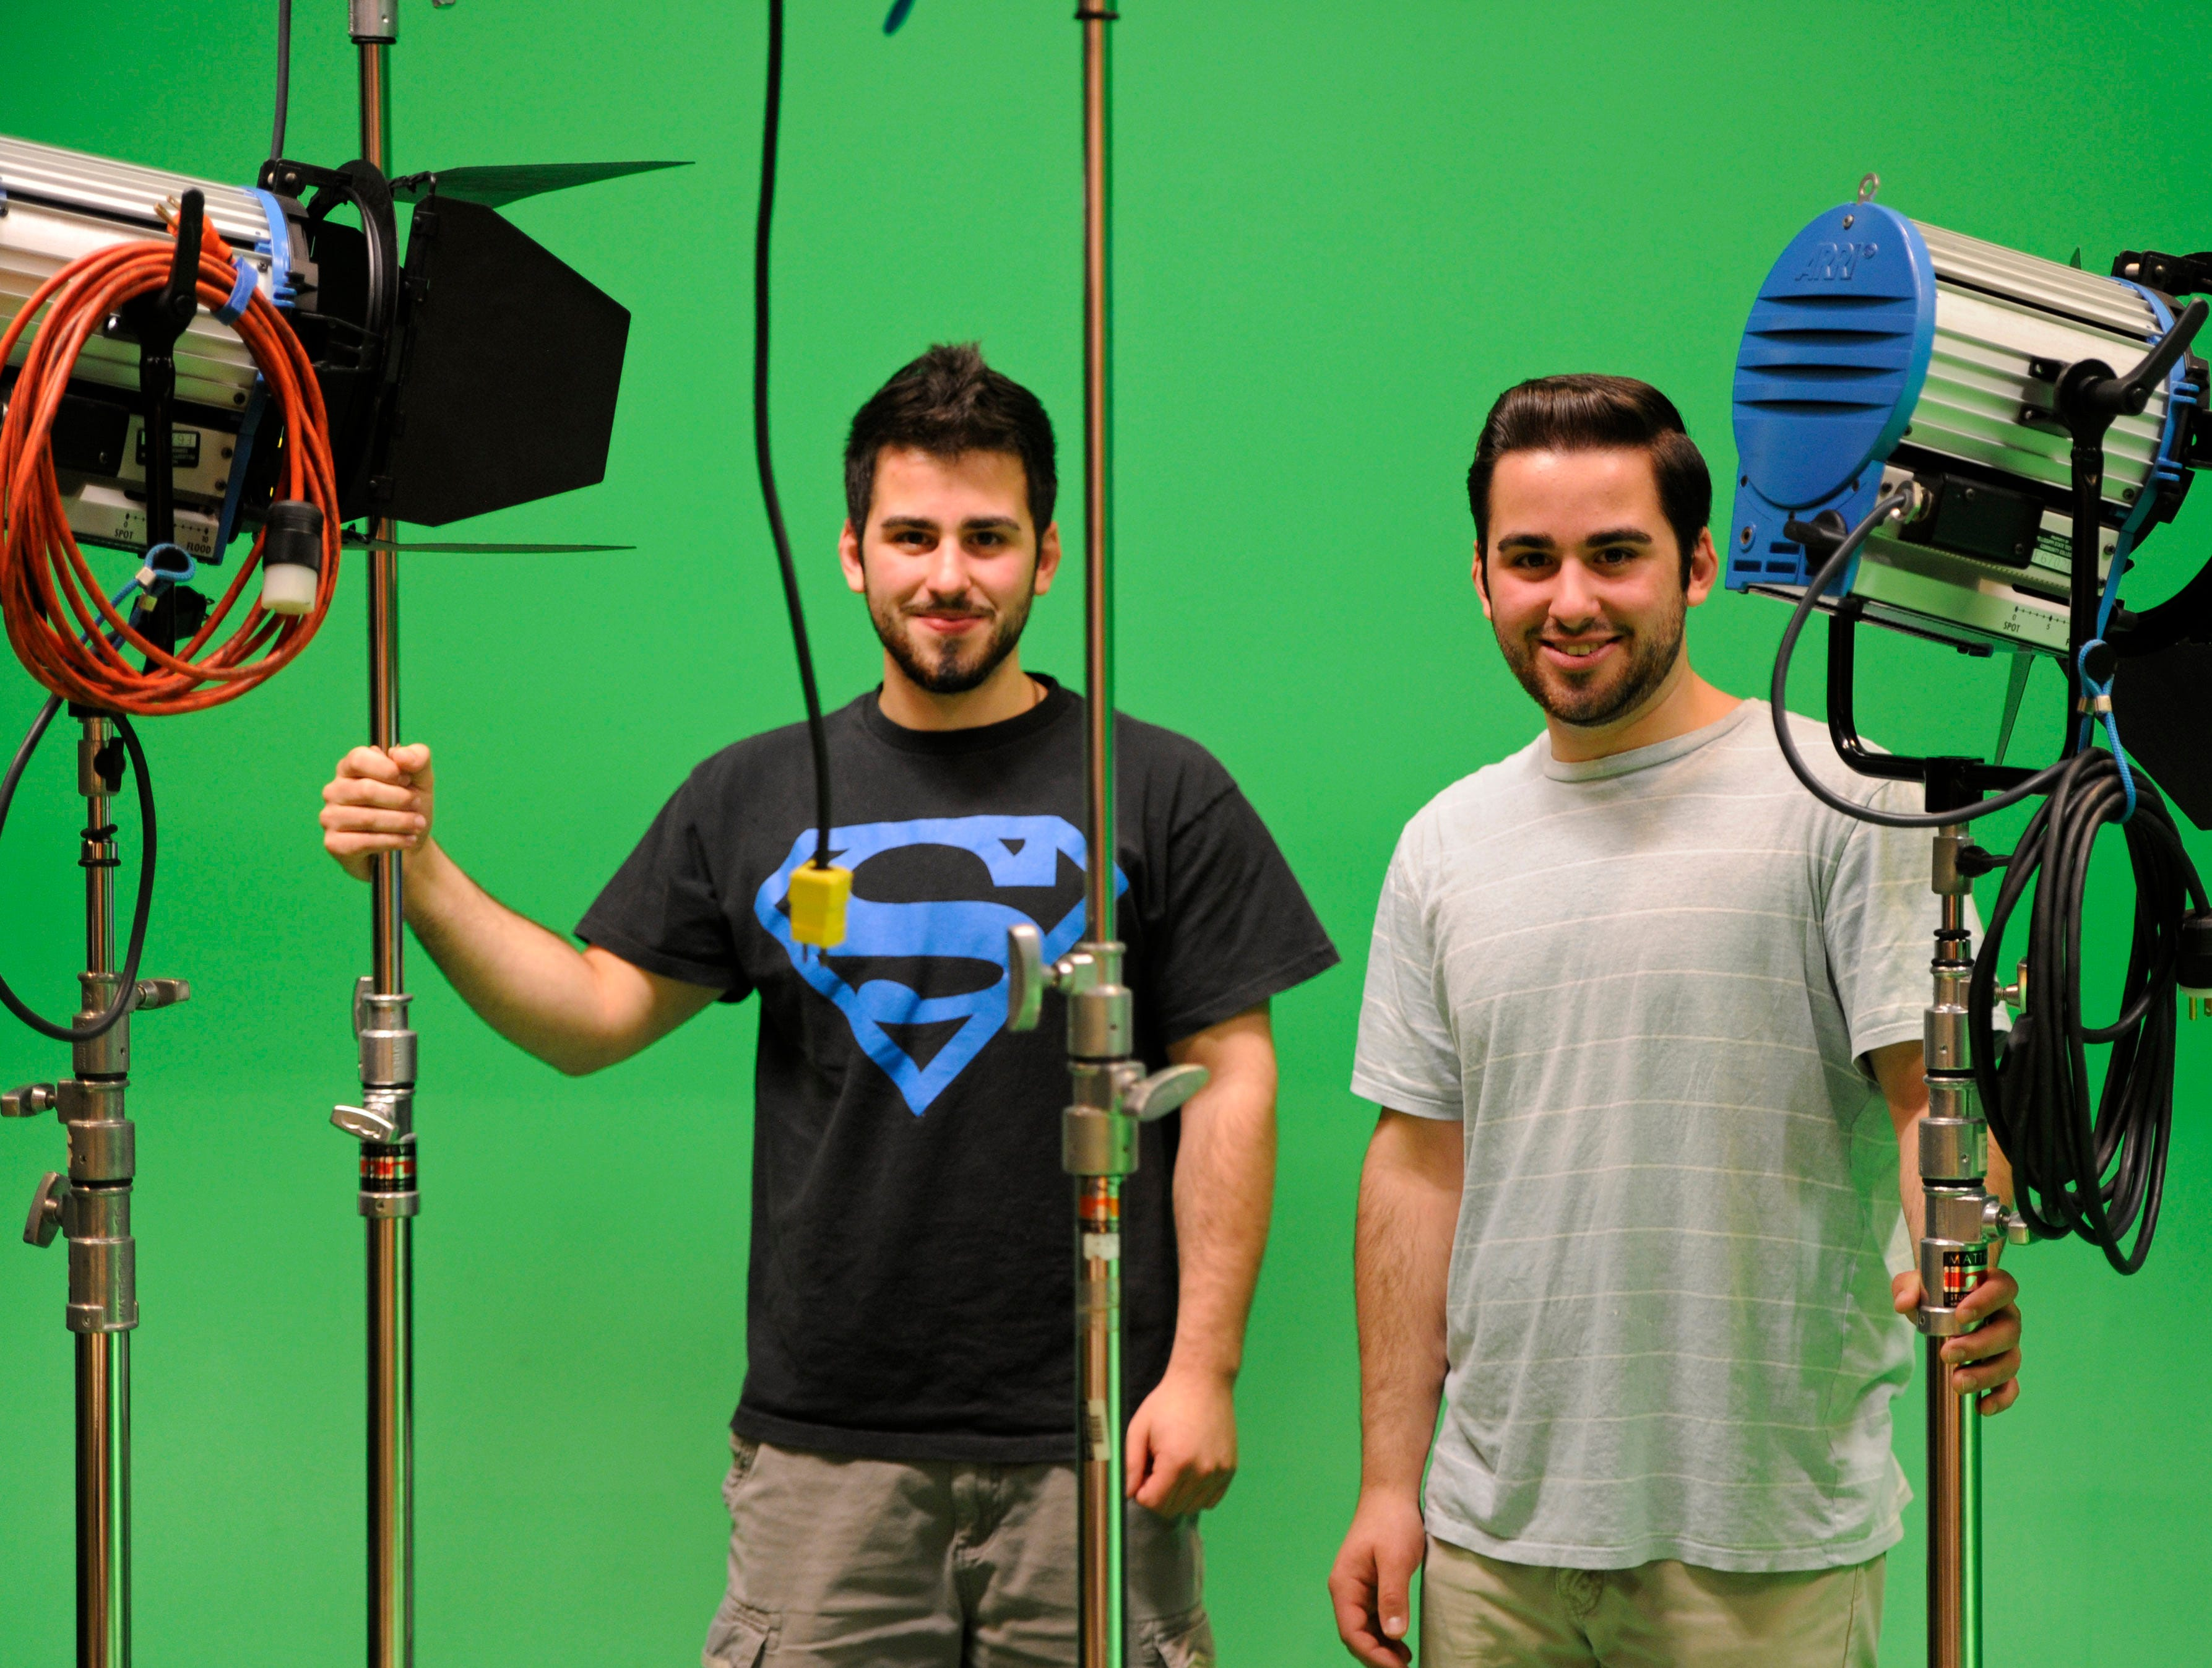 Nicky and Vinny Alfieri, from left, pose for a portrait in the Bagwell Center video studio at Pellissippi State Community College on Tuesday, April 21, 2015. The twin brothers are currently enrolled in the video production program at Pellissippi.